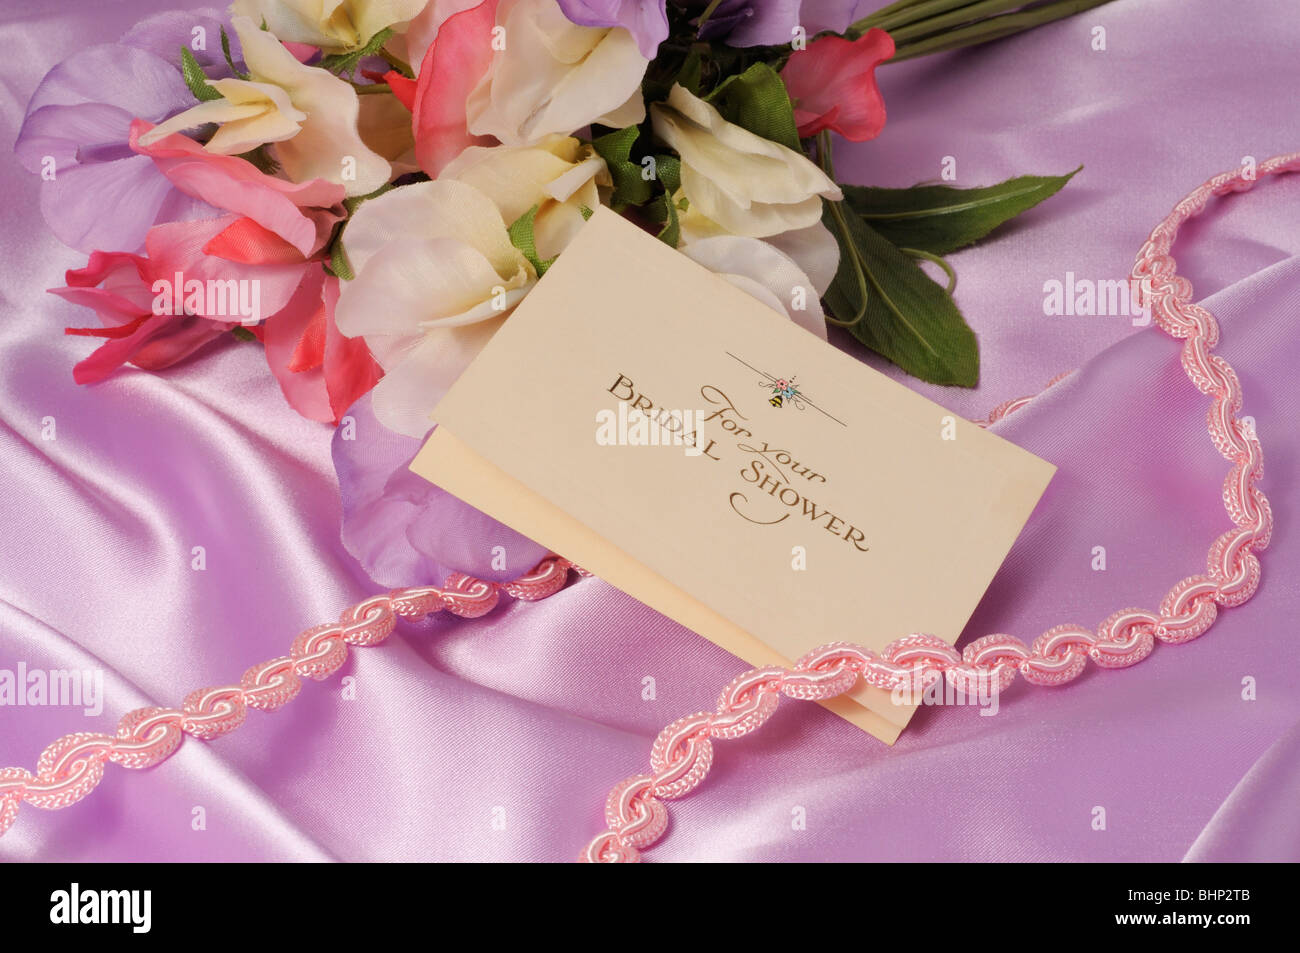 Bridal Shower Card Stock Photos & Bridal Shower Card Stock Images ...